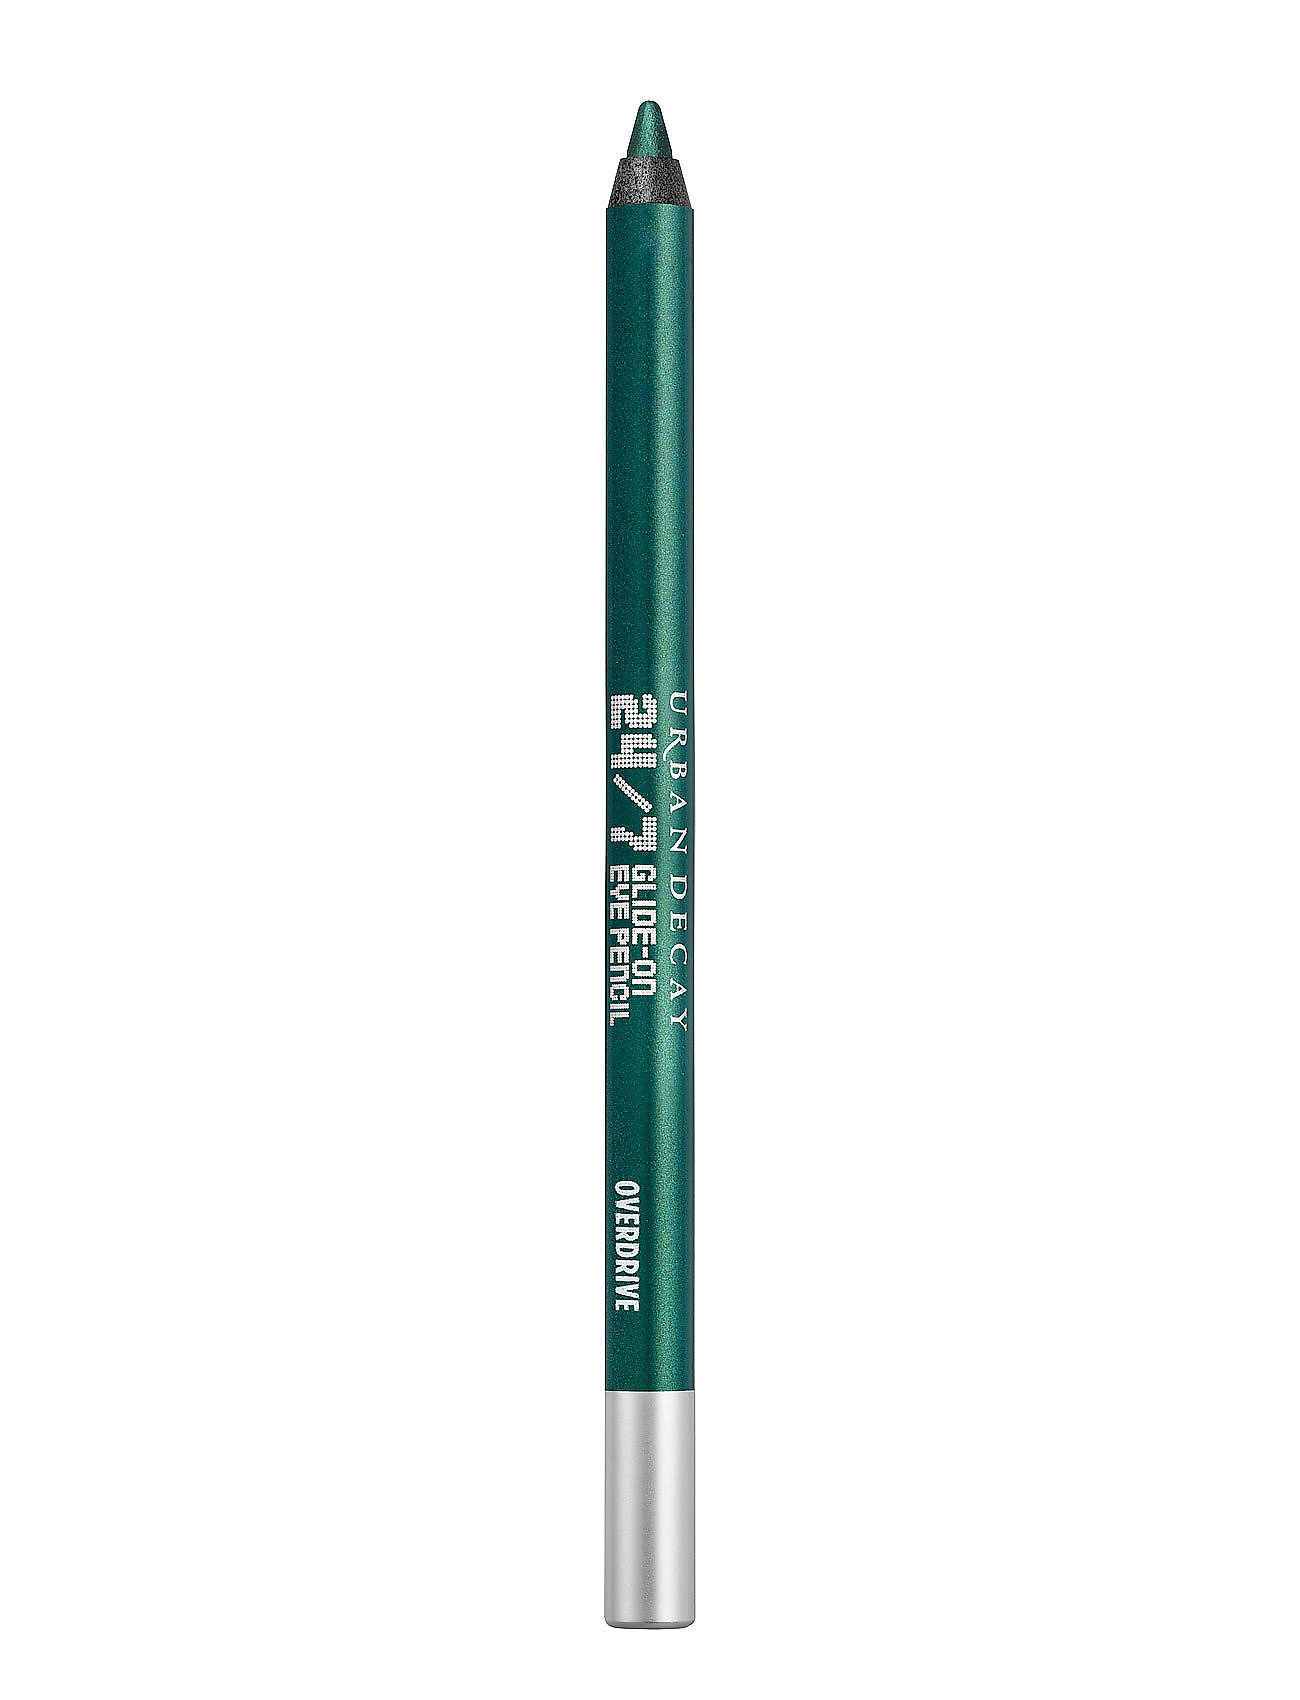 Urban Decay 24/7 PENCILS SHADE BORN TO RUN - OVERDRIVE